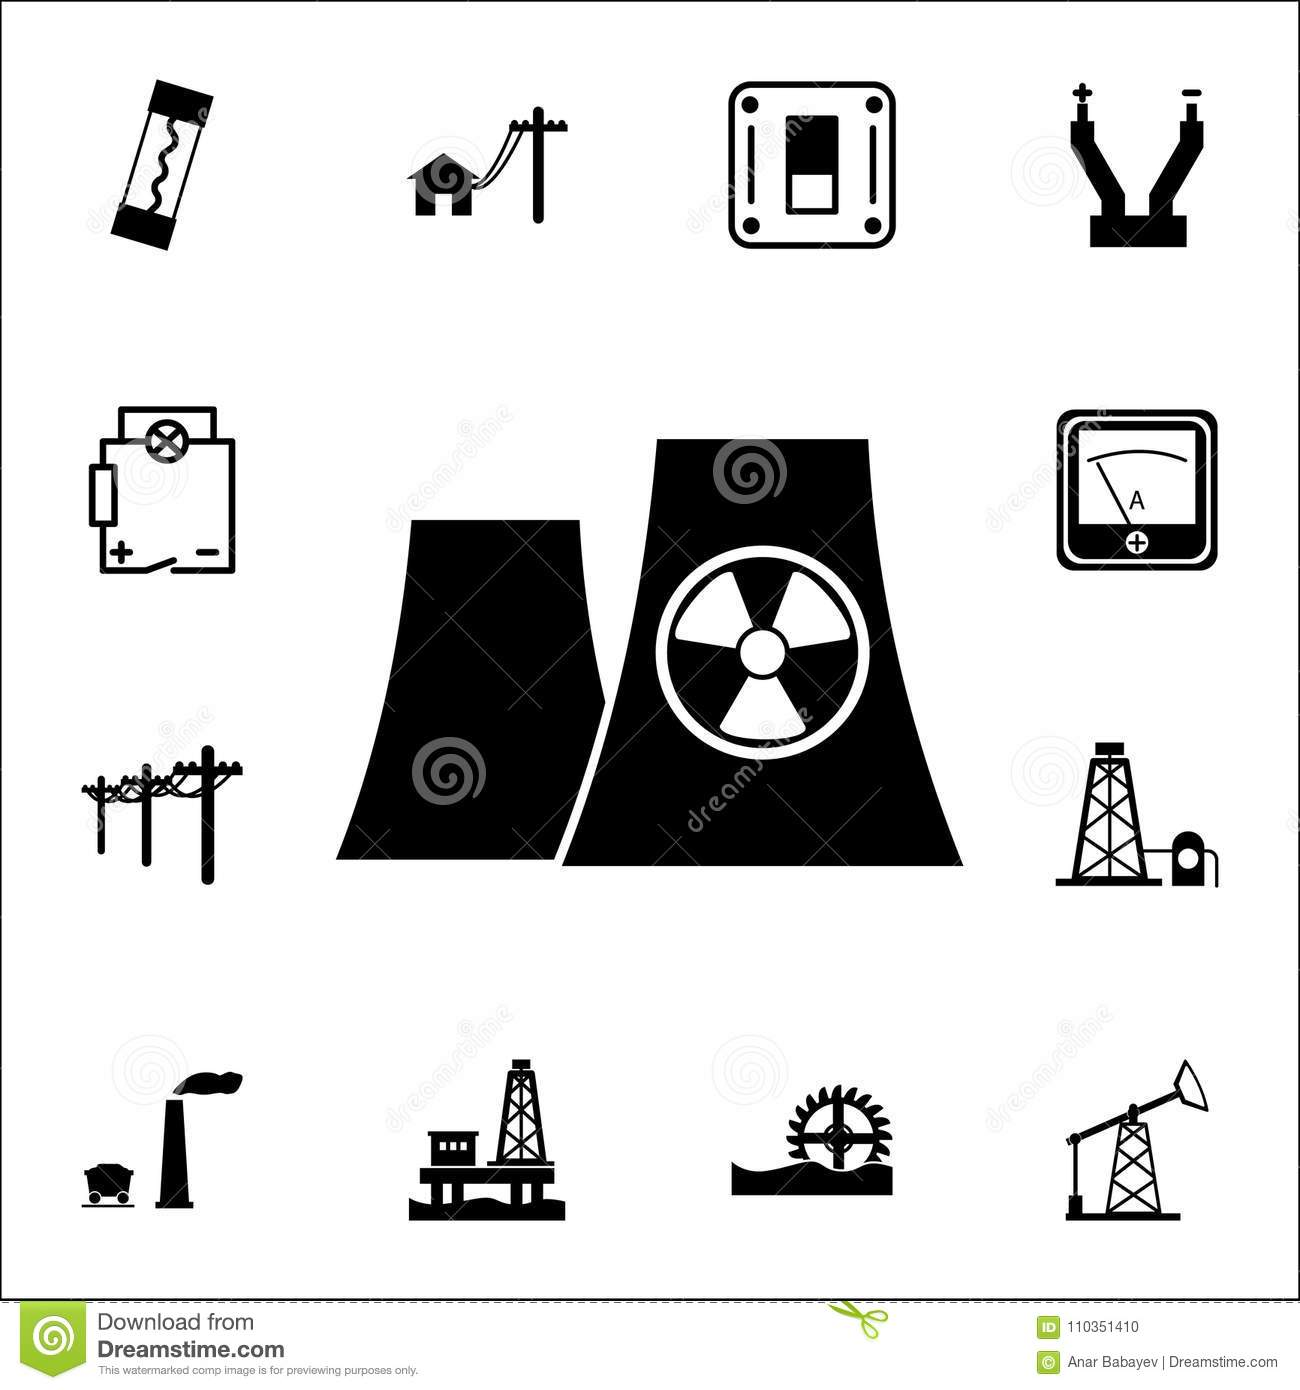 Nuclear power plant silhouette icon set of energy icons premium nuclear power plant silhouette icon set of energy icons premium quality graphic design icons signs and symbols collection icons biocorpaavc Gallery